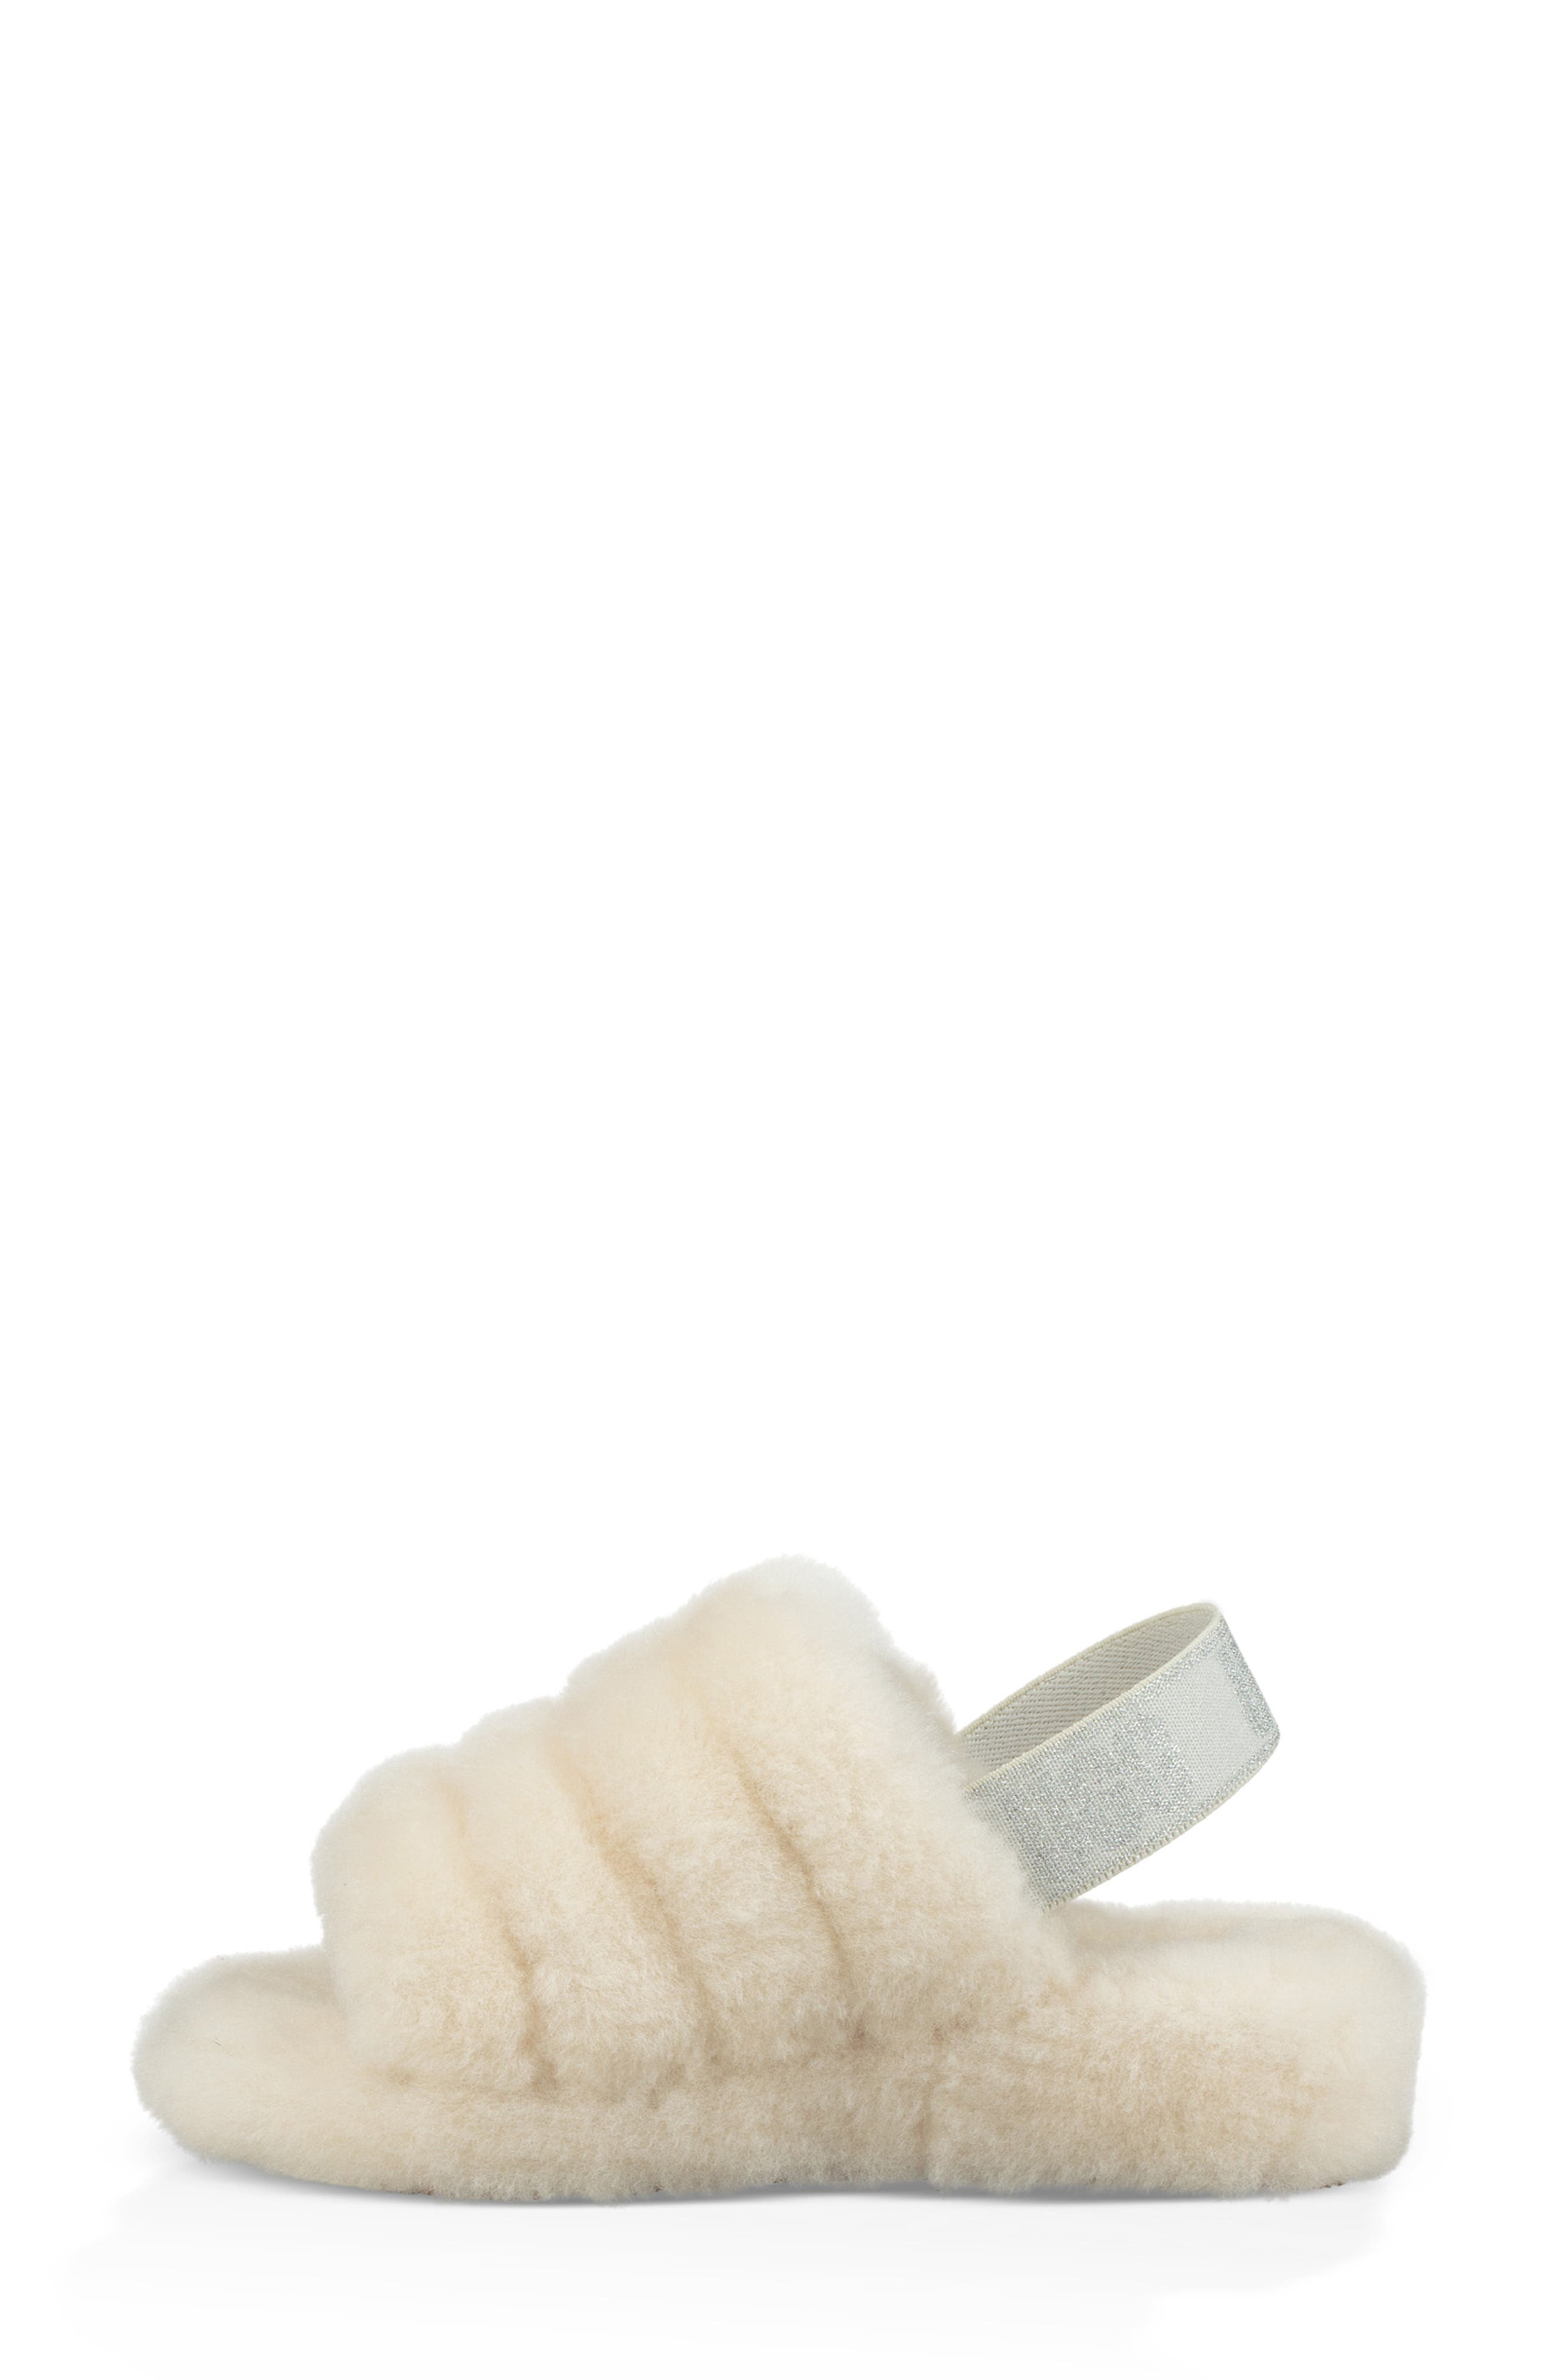 Fluff Yeah Genuine Shearling Slipper,                             Alternate thumbnail 3, color,                             CREAM